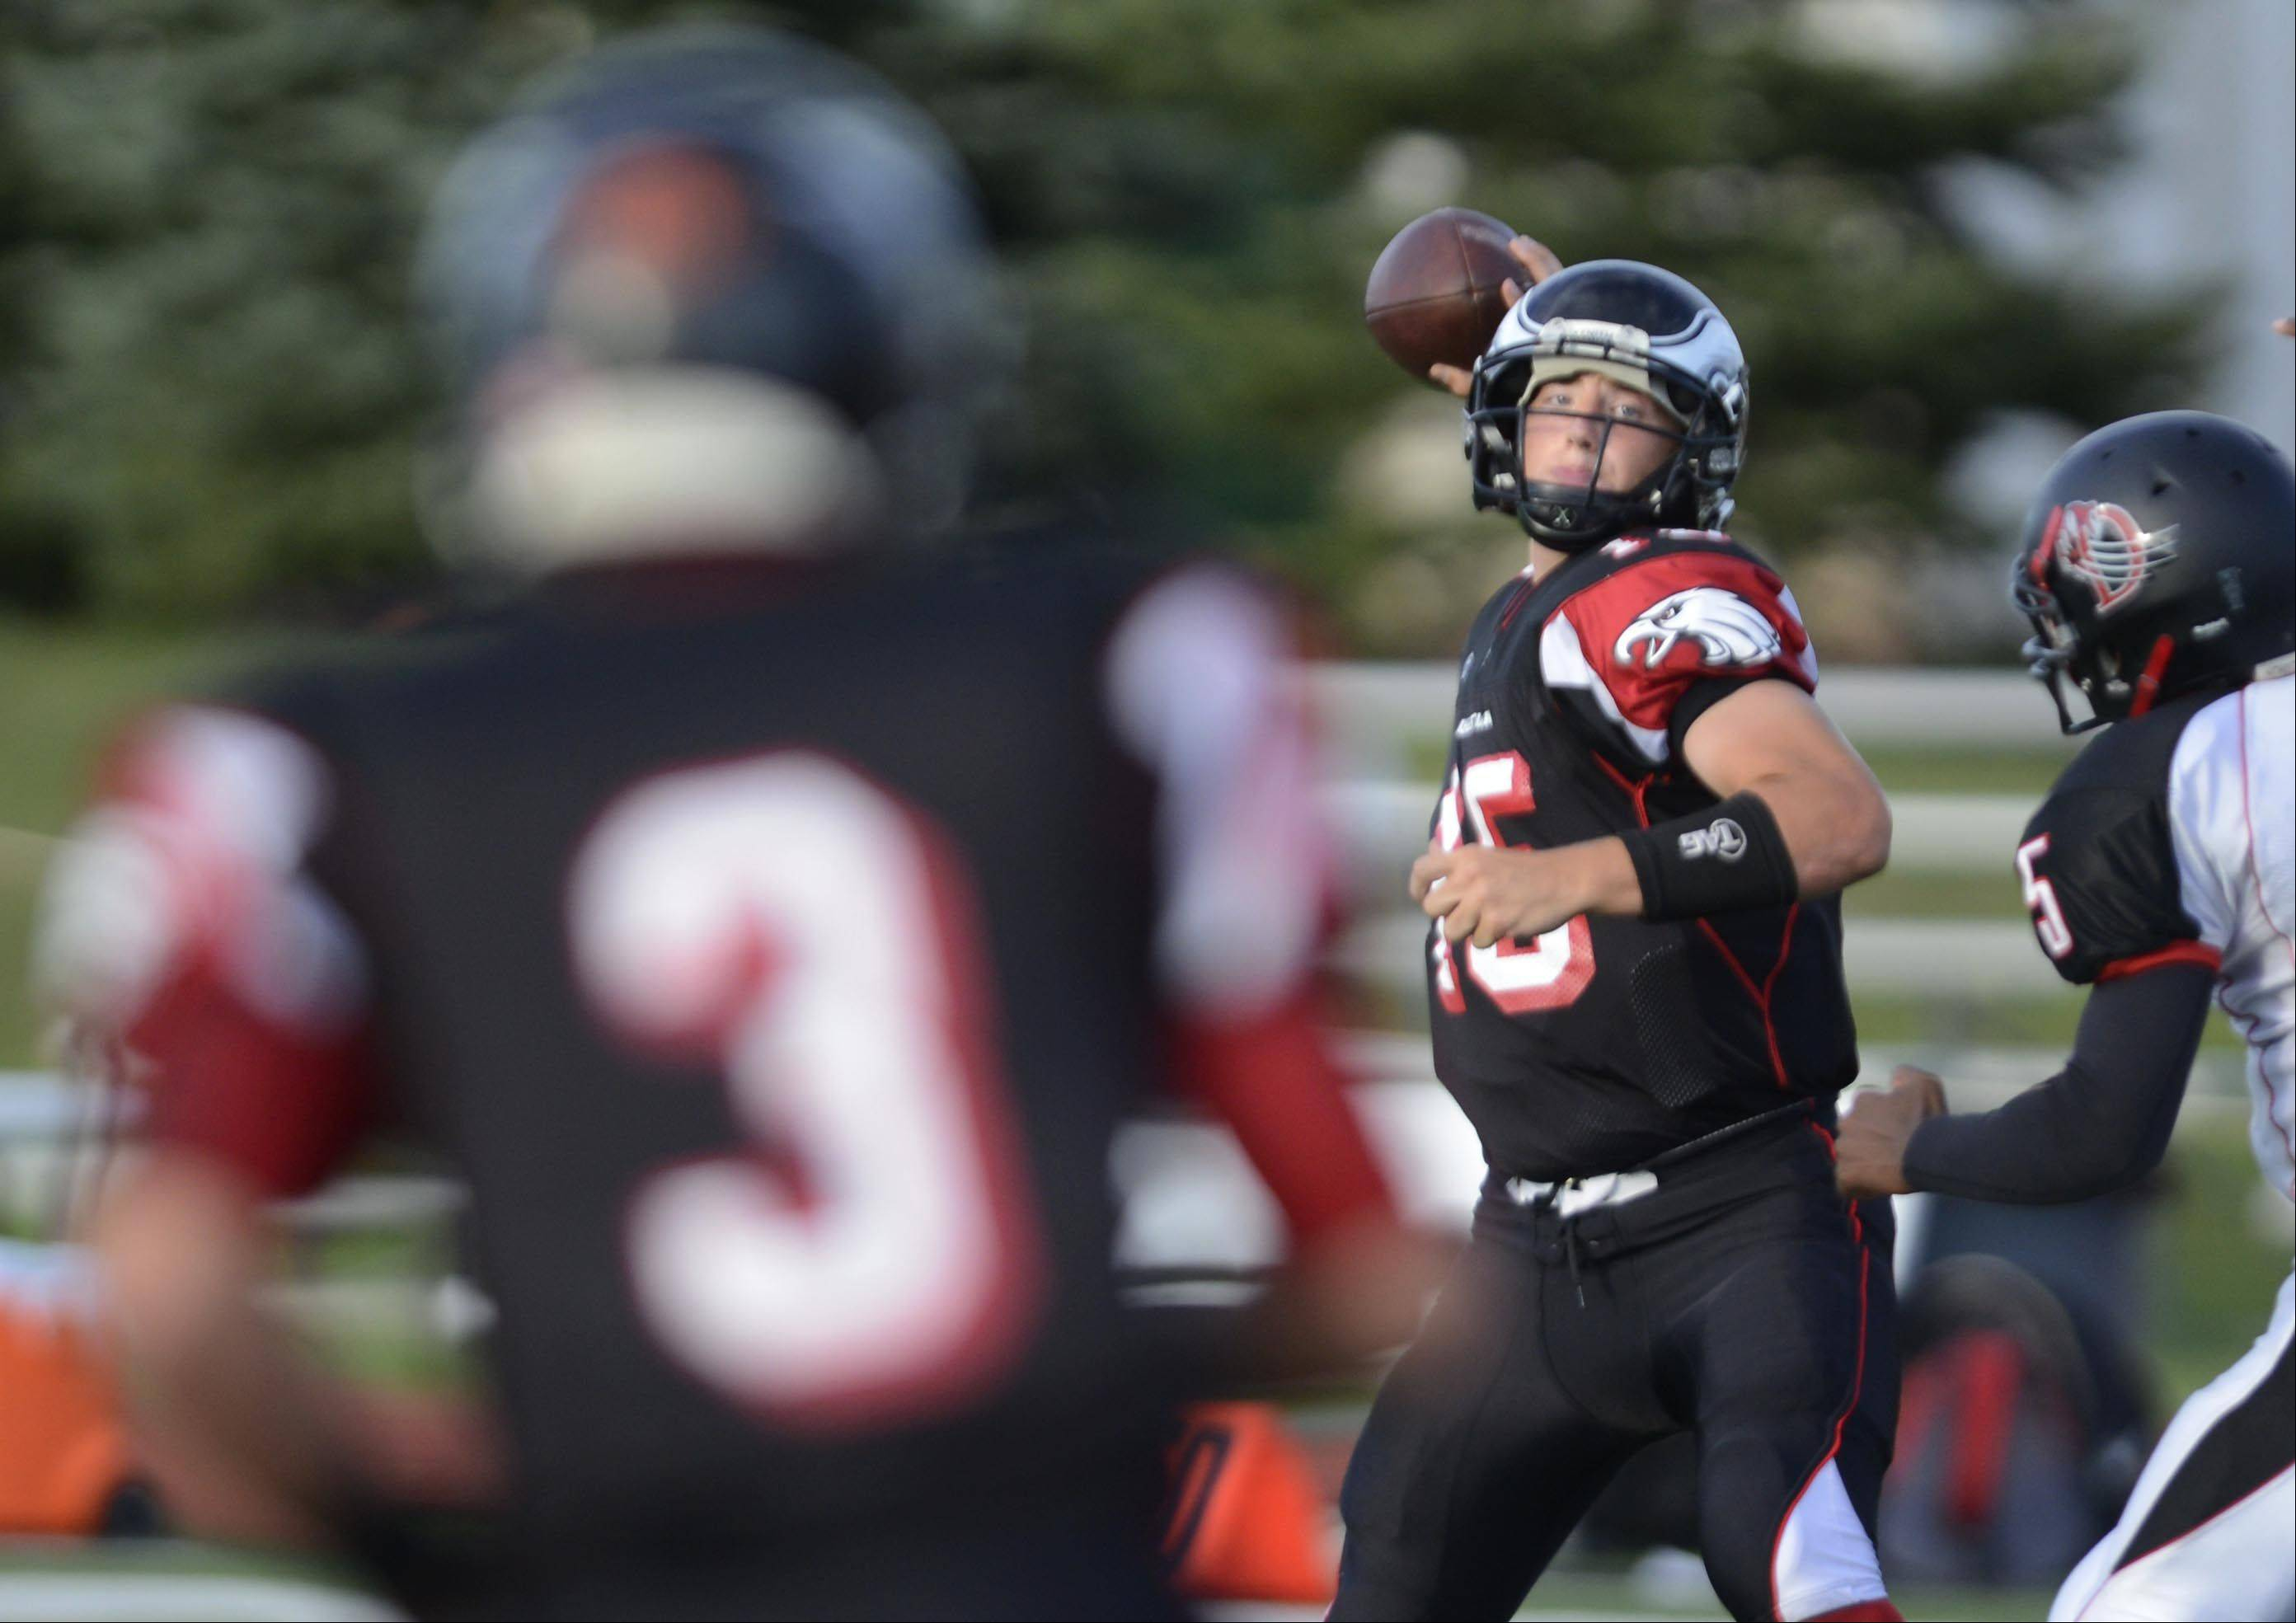 Aurora Christian quarterback Austin Bray throws to wide receiver Brandon Walgren for a first-half touchdown against DuSable in a rare Tuesday game in Aurora. Aurora Christian scored 57 first half points.